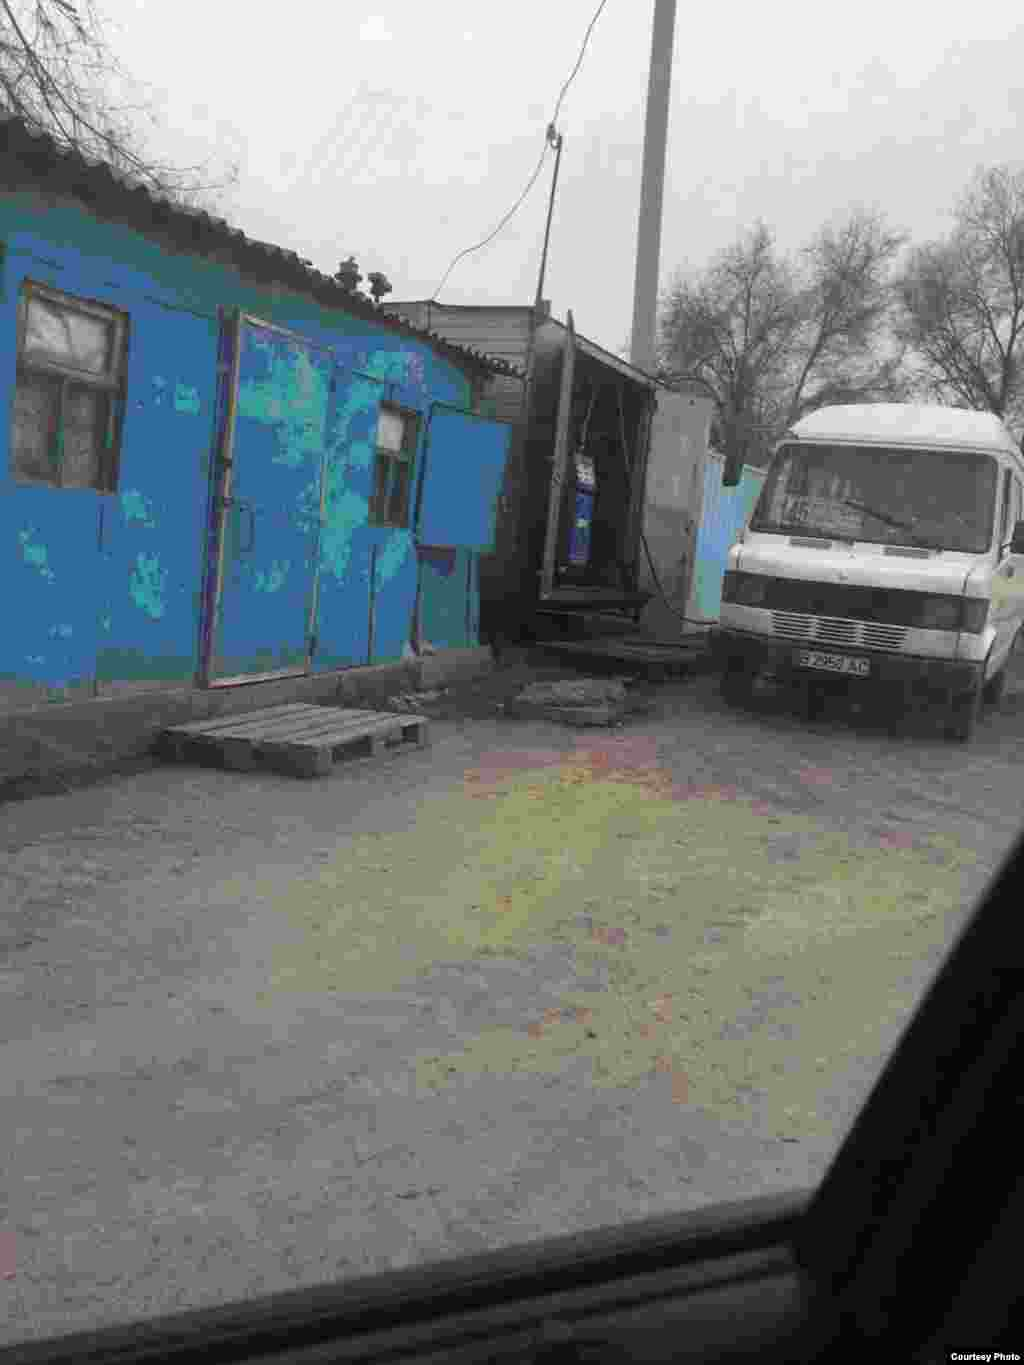 Illegal oil is being sold, Kyrgyzstan